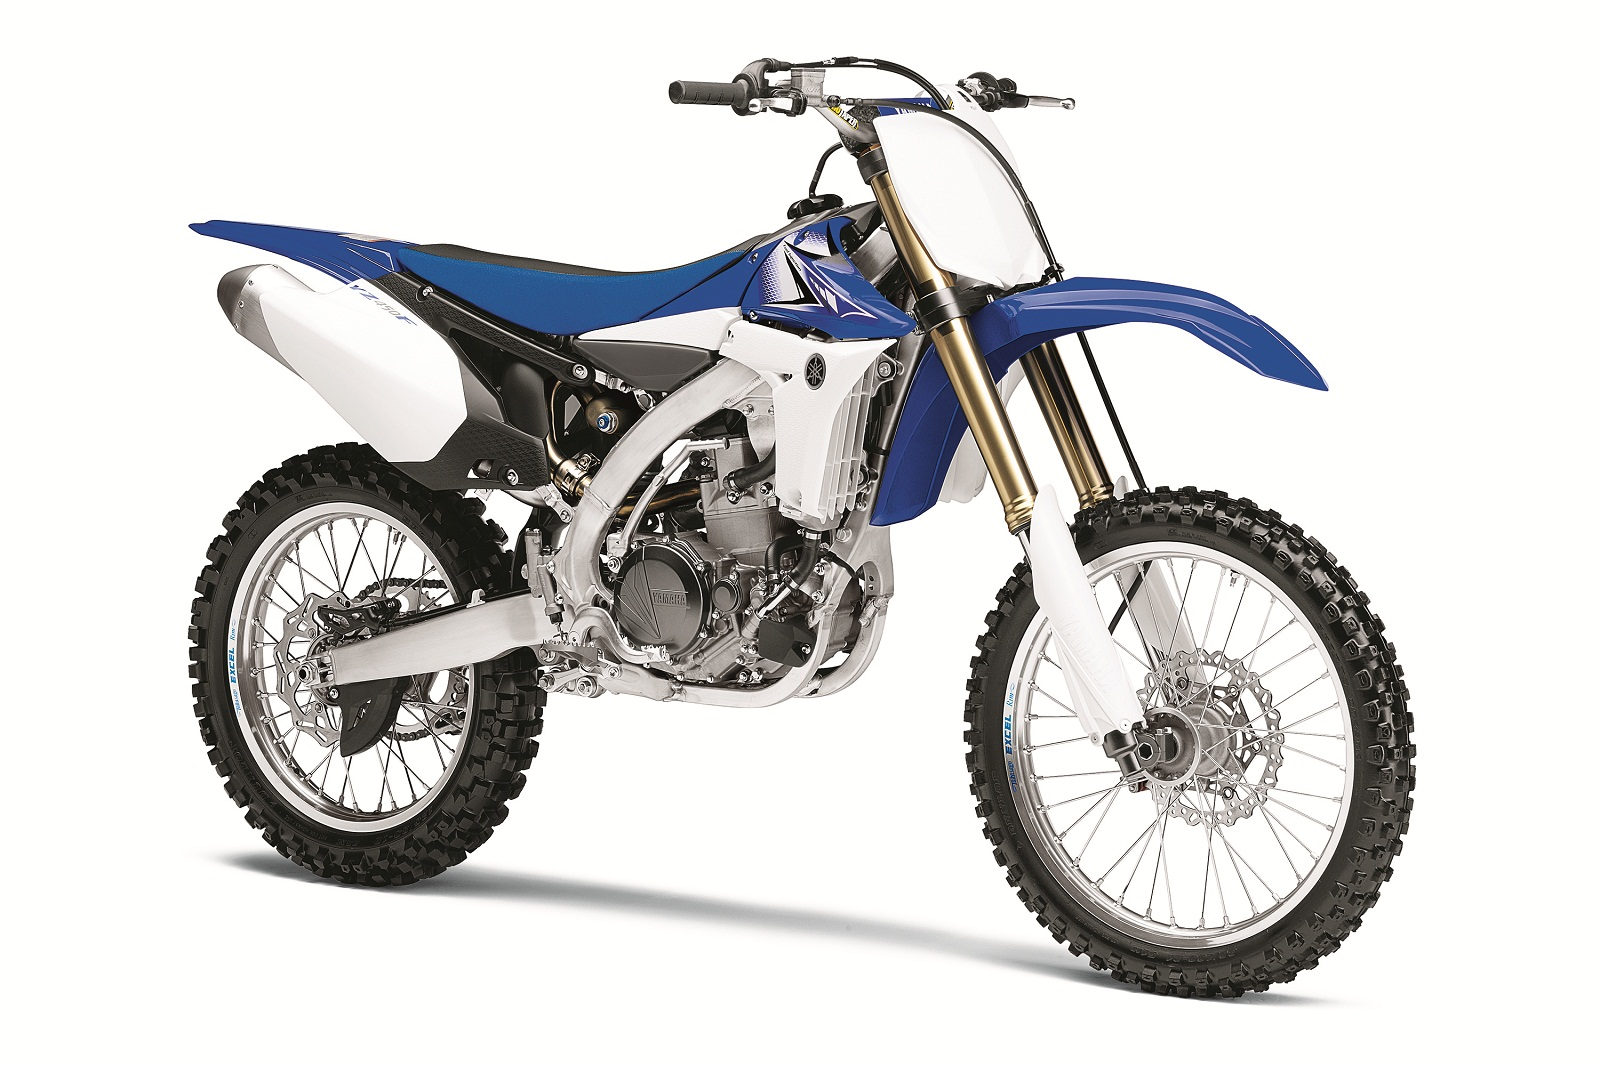 2011 yamaha yz450f review top speed for Yamaha yz 450f